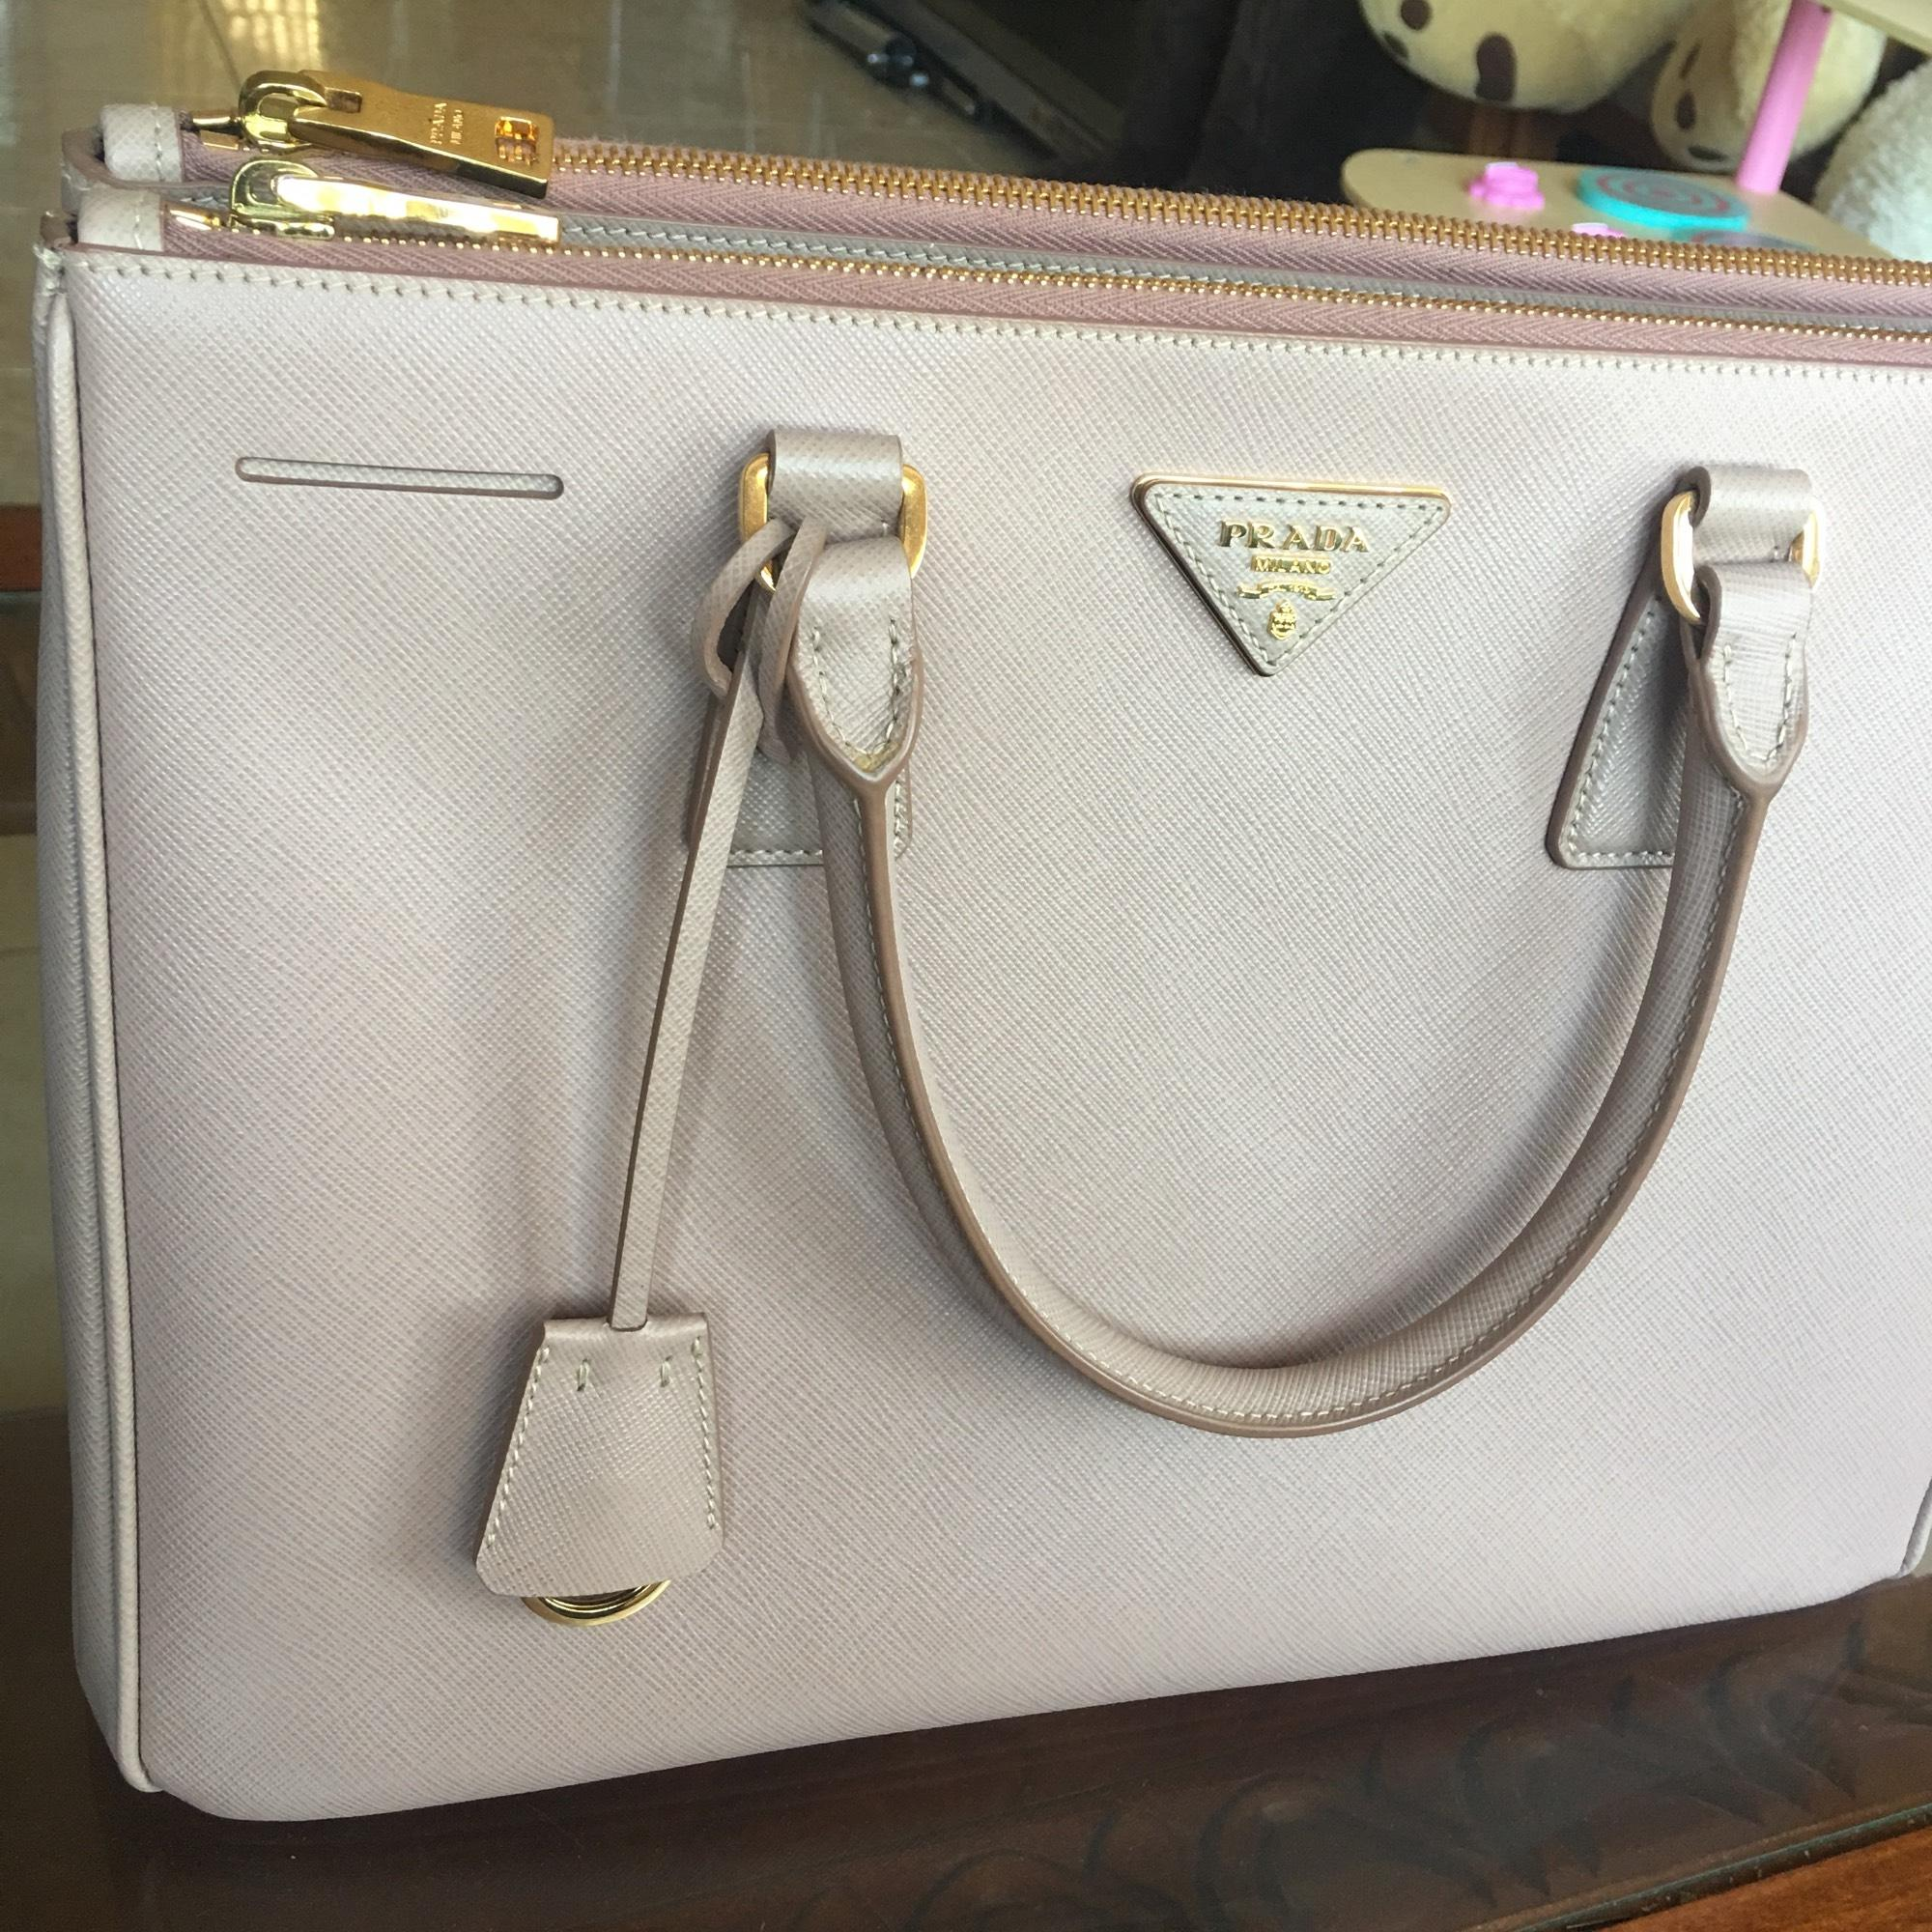 533d85605d8b ... cameo tote befb2 13d84 norway prada double zip tote cammeo saffiano  leather satchel tradesy 095eb 79e57 ...